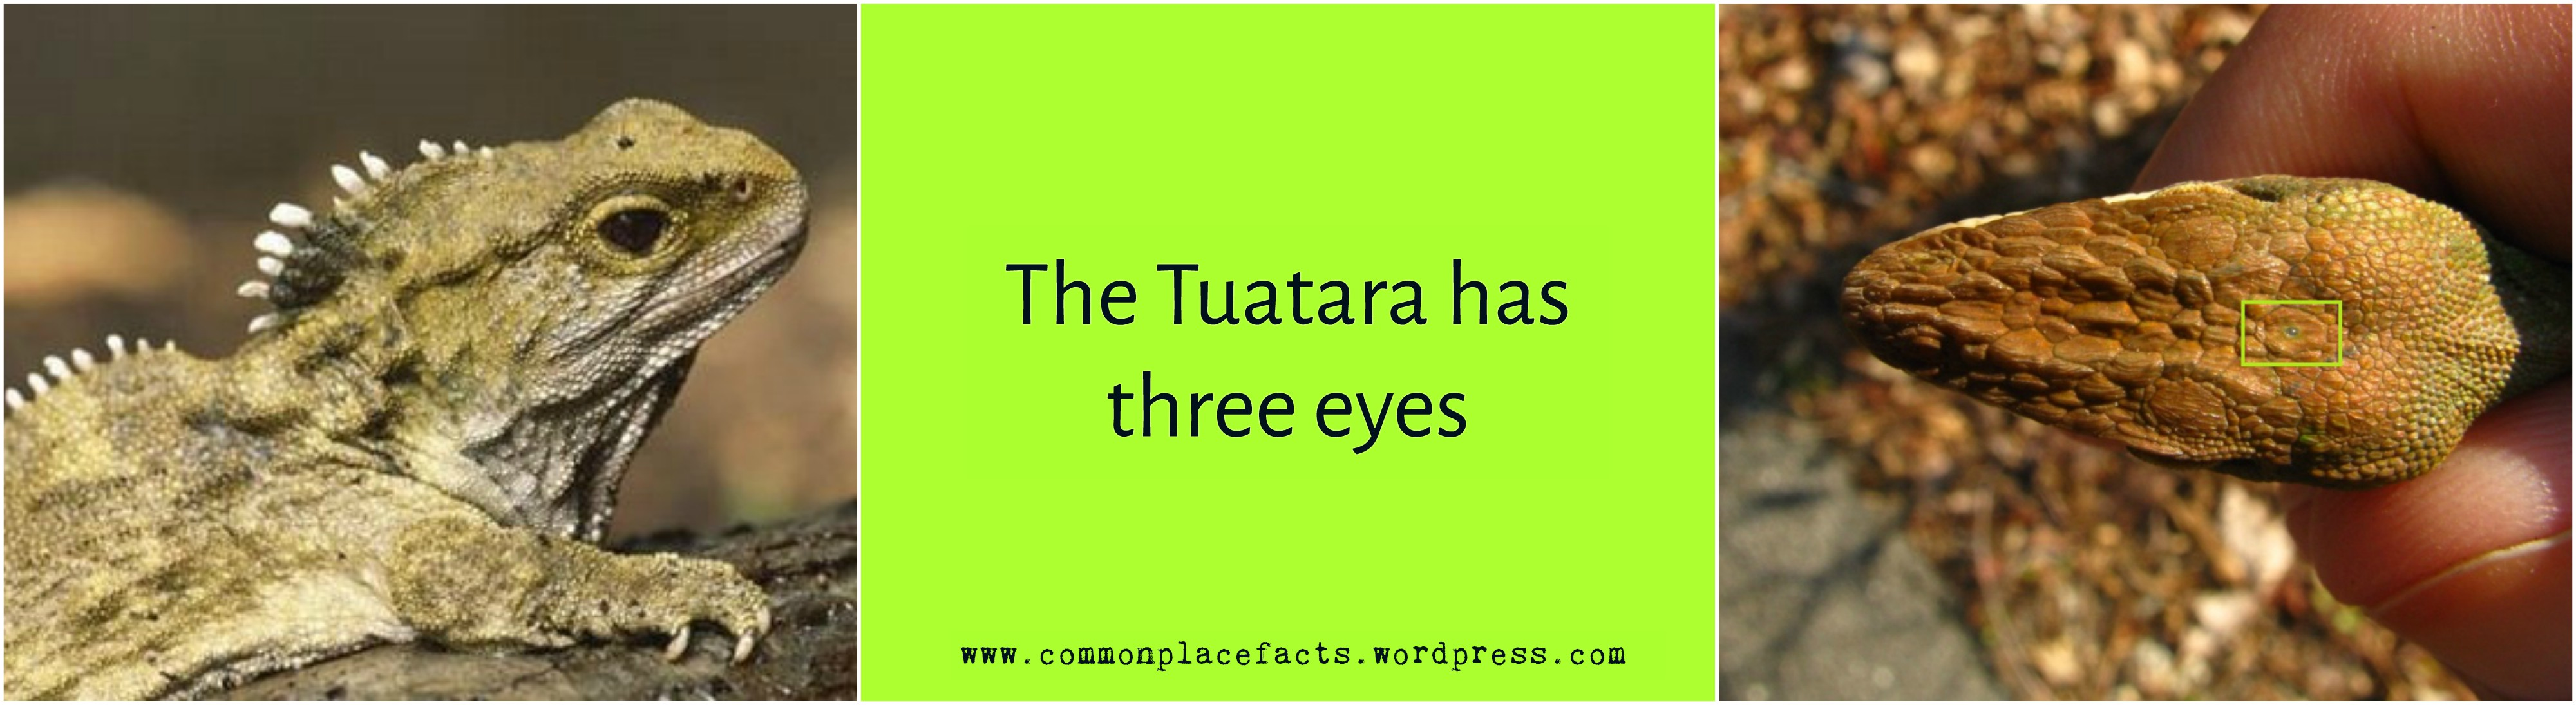 tuatara has three eyes